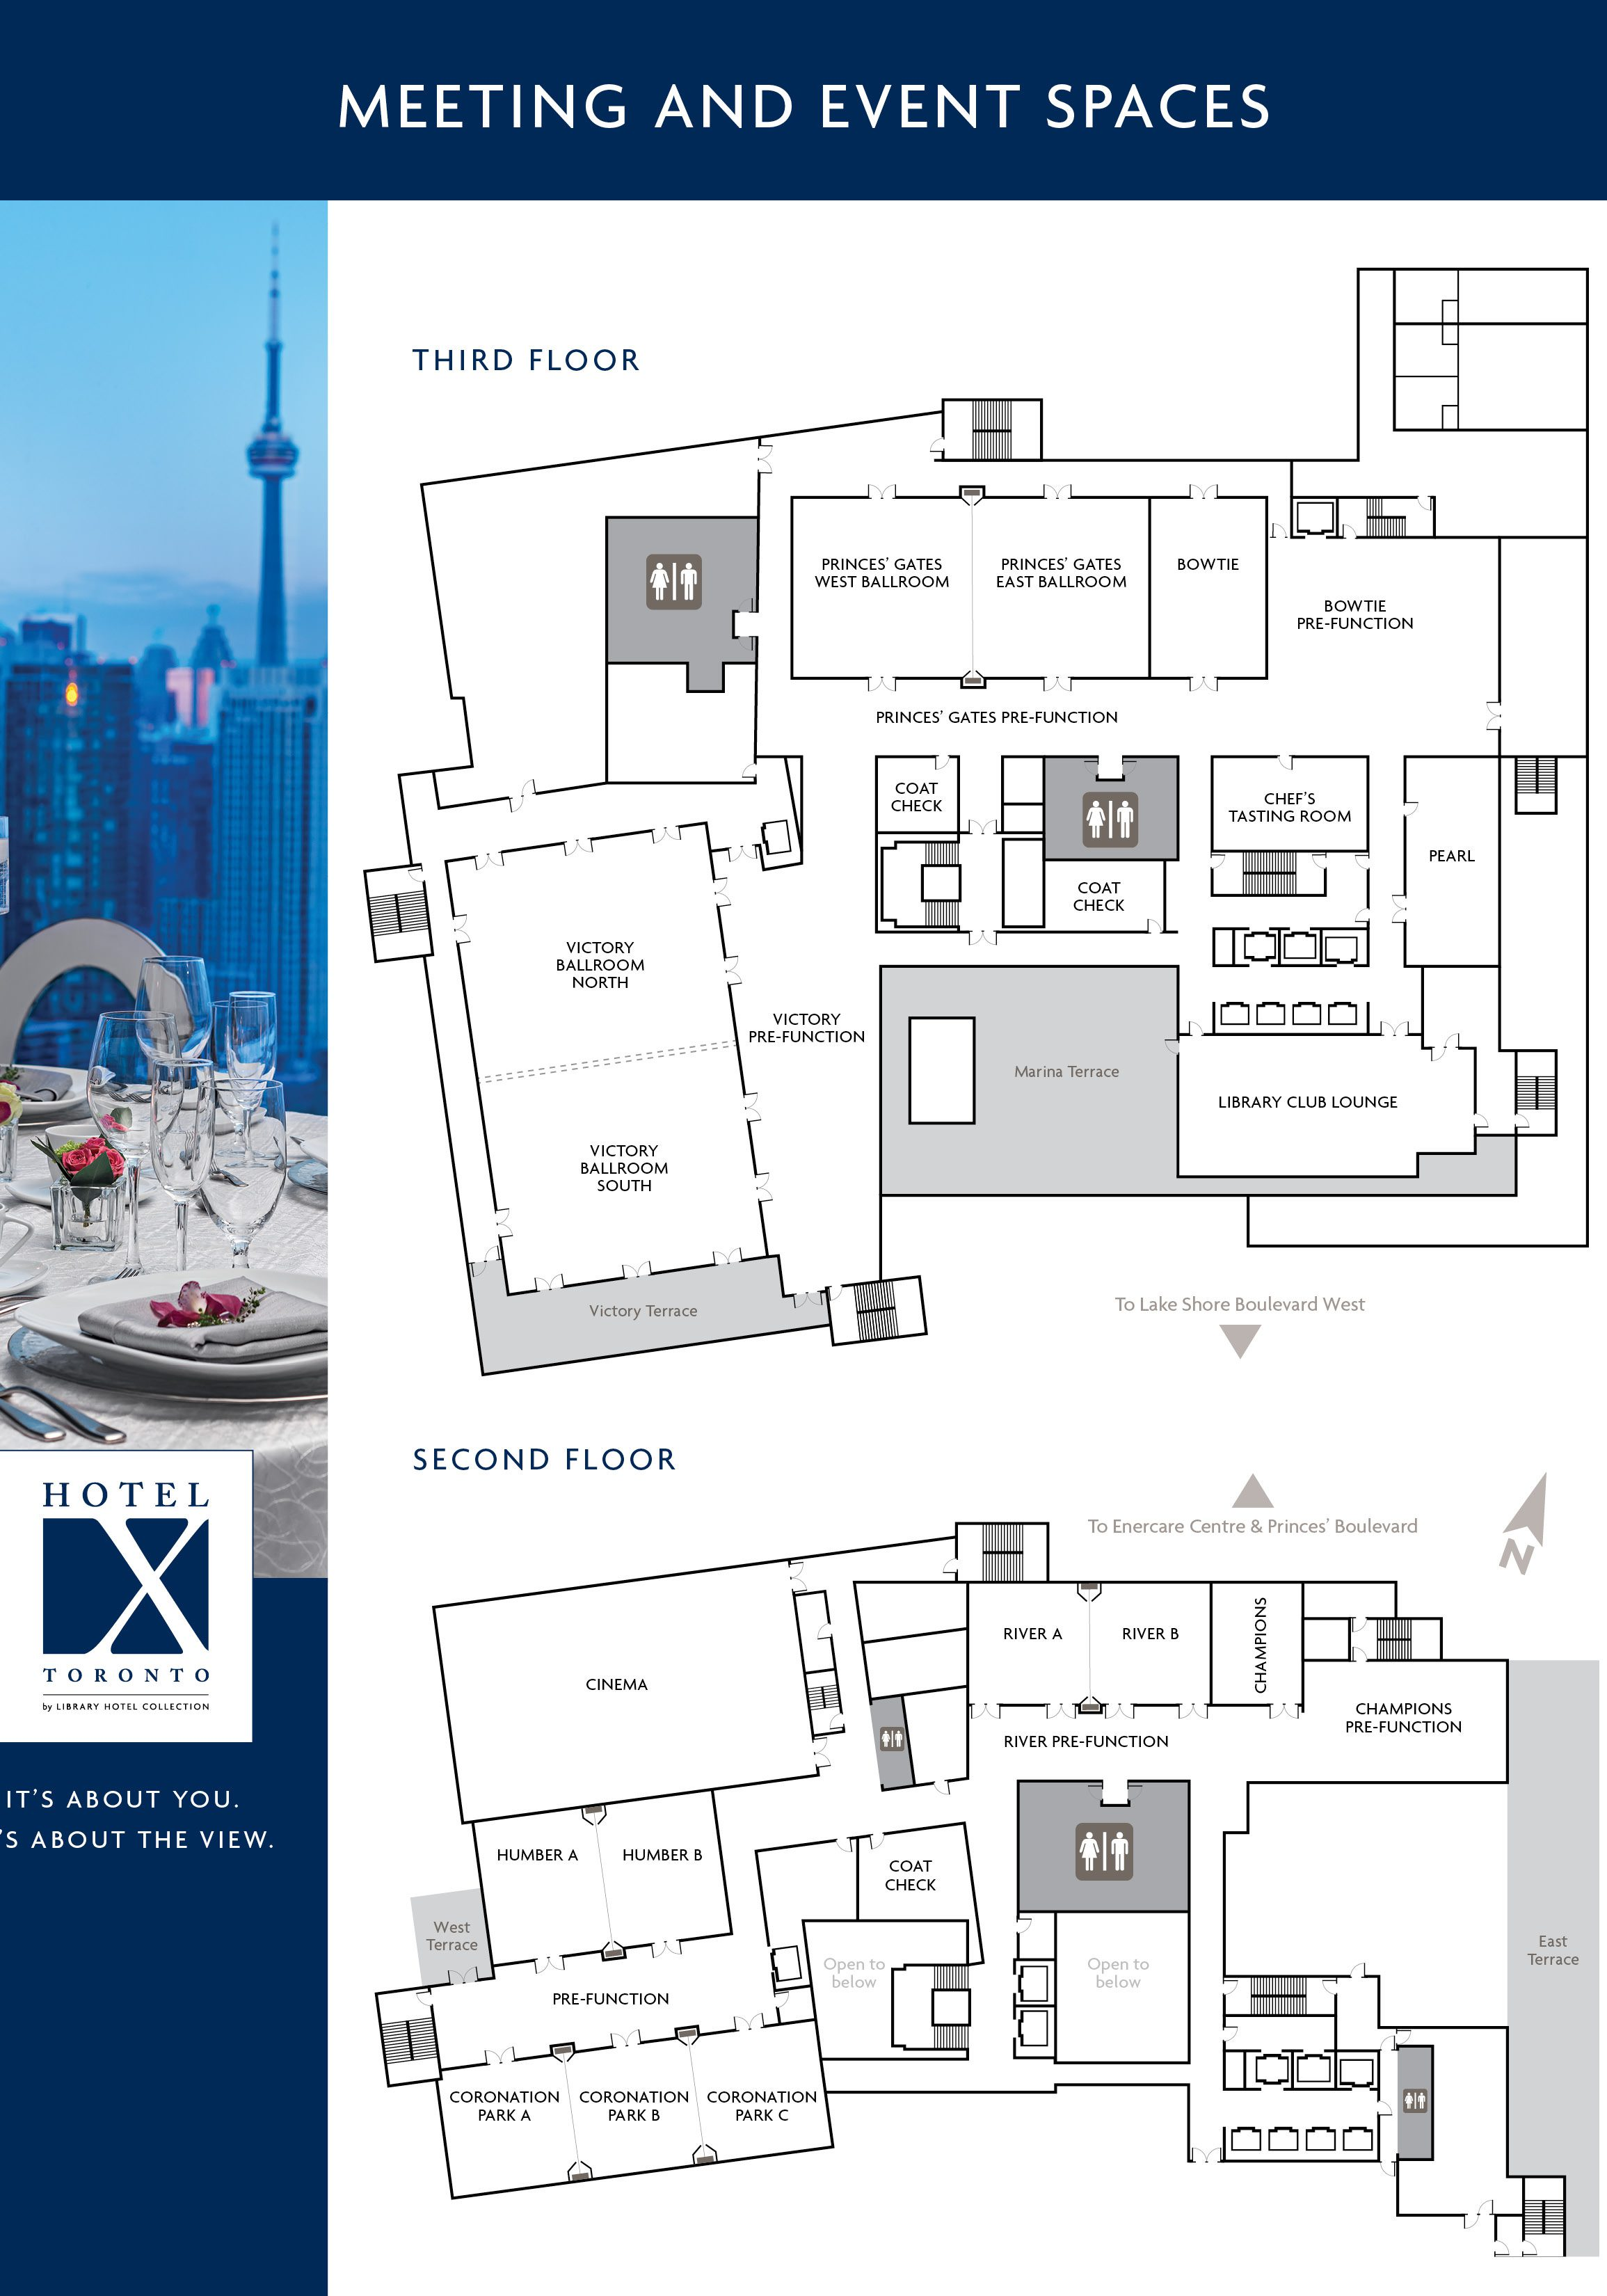 Hotel X Toronto Infographic Map of Meeting and Event Spaces